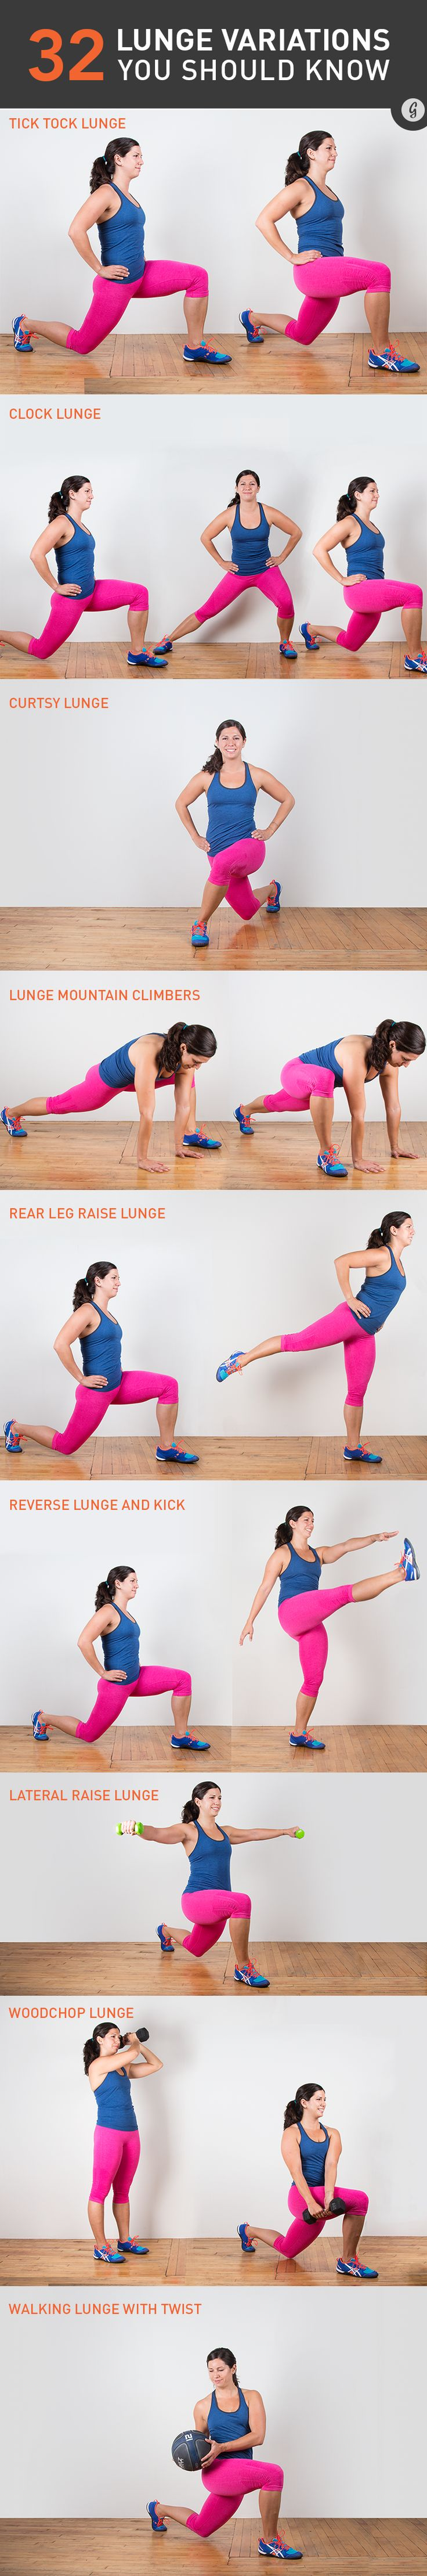 There's way more to the lunge than the simple bodyweight version we all know and love (to hate). Add weights, jumping, curtsies, lifts, and more to take your strength workout from basic to BANANAS. #lunge #bodyweightexercise #bodyweight http://greatist.com/move/lunge-variations-you-need-to-know